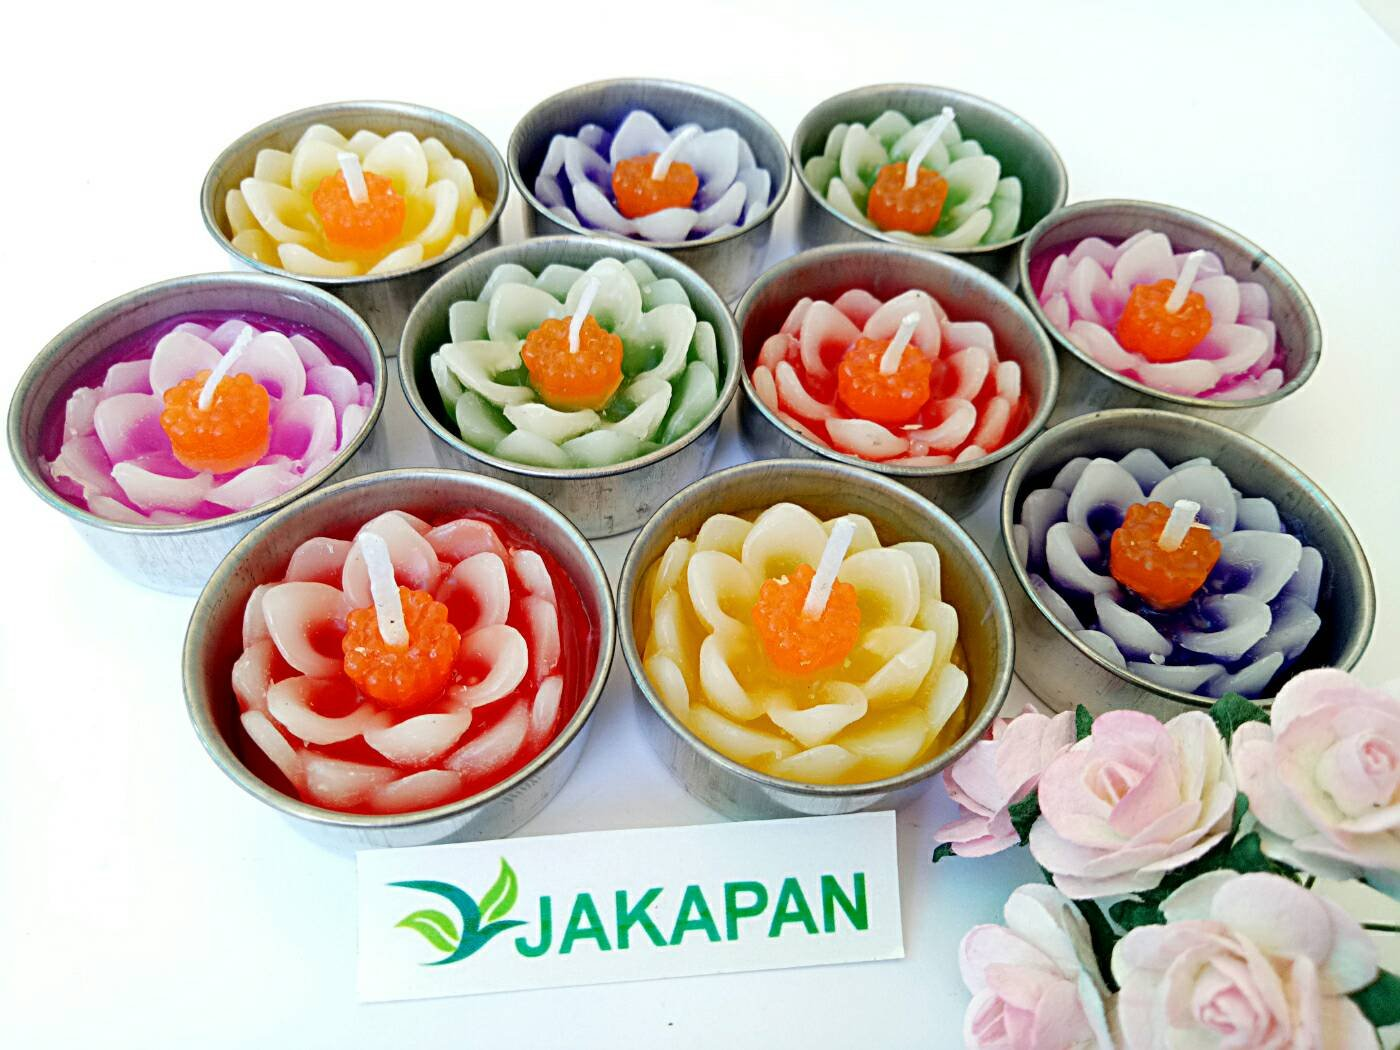 Jakapan Lotus Flower Candle in Tea Lights, Floating Candles, Scented Tea Lights, Aromatherapy Relax ,Gift Set 10 Pcs